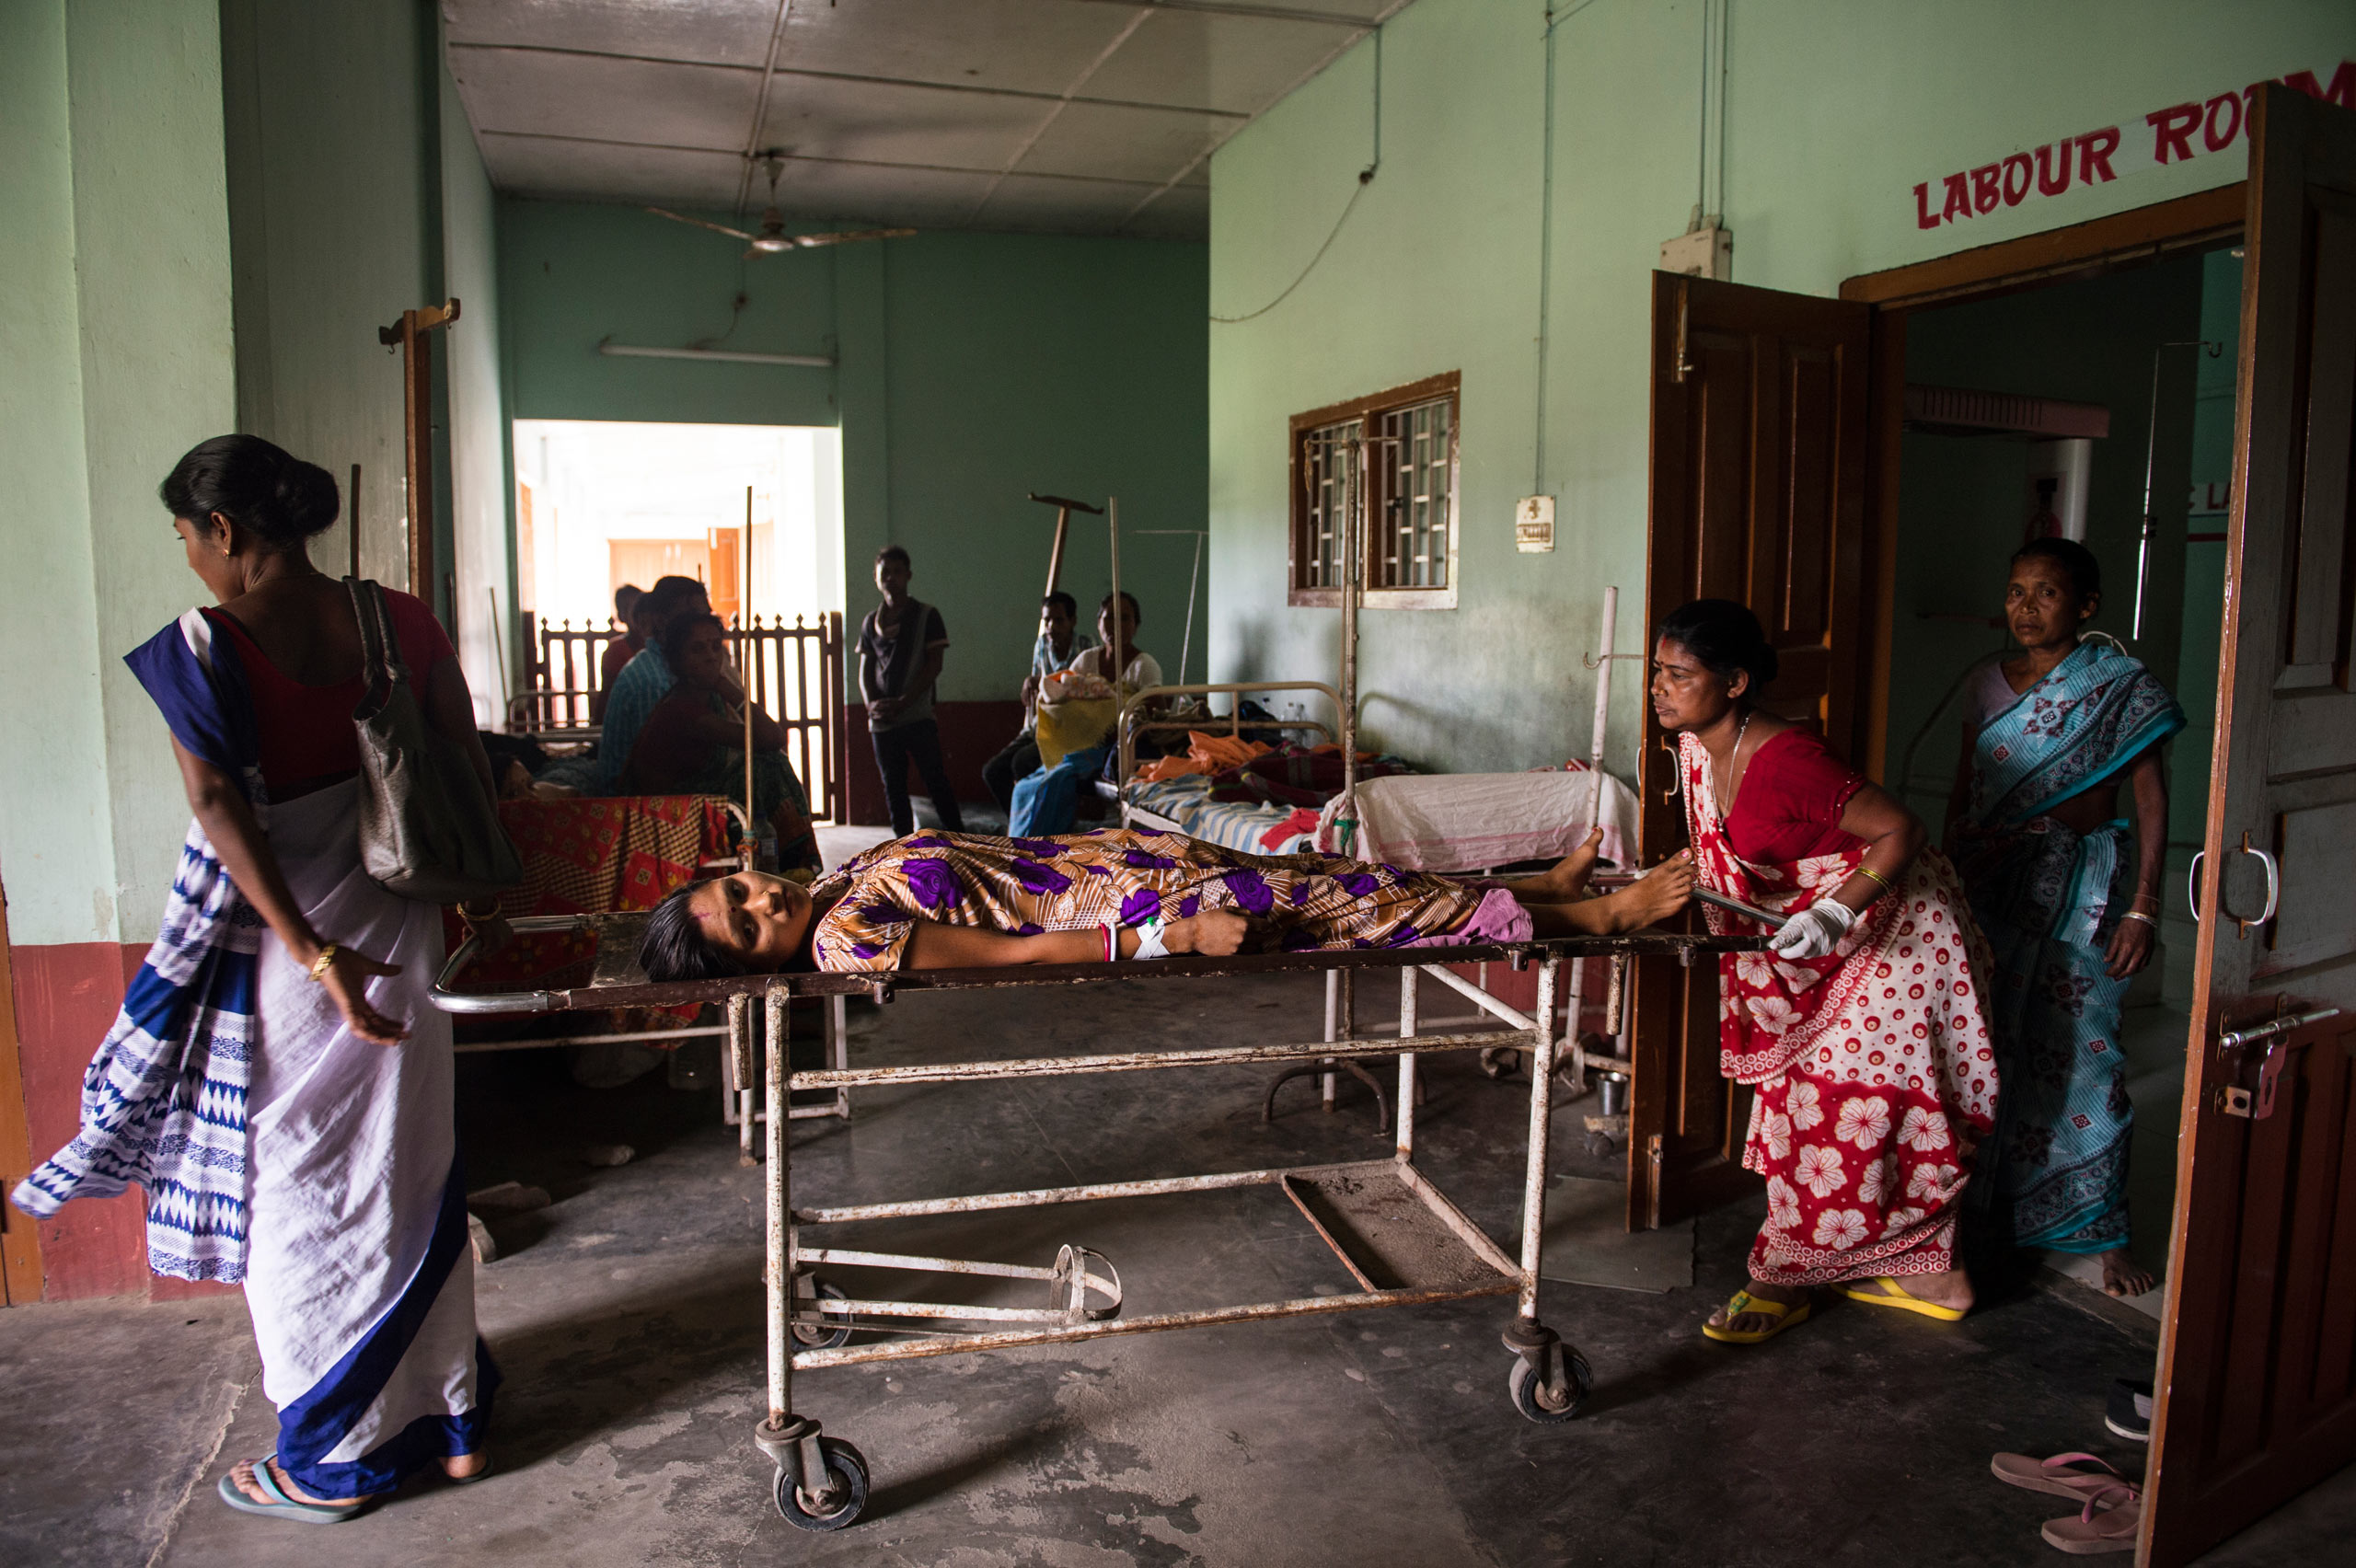 Sarasoti Bauri, 22, lies on a stretcher after she delivered her second child in a taxi en route to the hospital. She lost a relevant amount of blood prior to arriving at the Dhekiajuli Community Health Center in Assam, India. April 8, 2015.